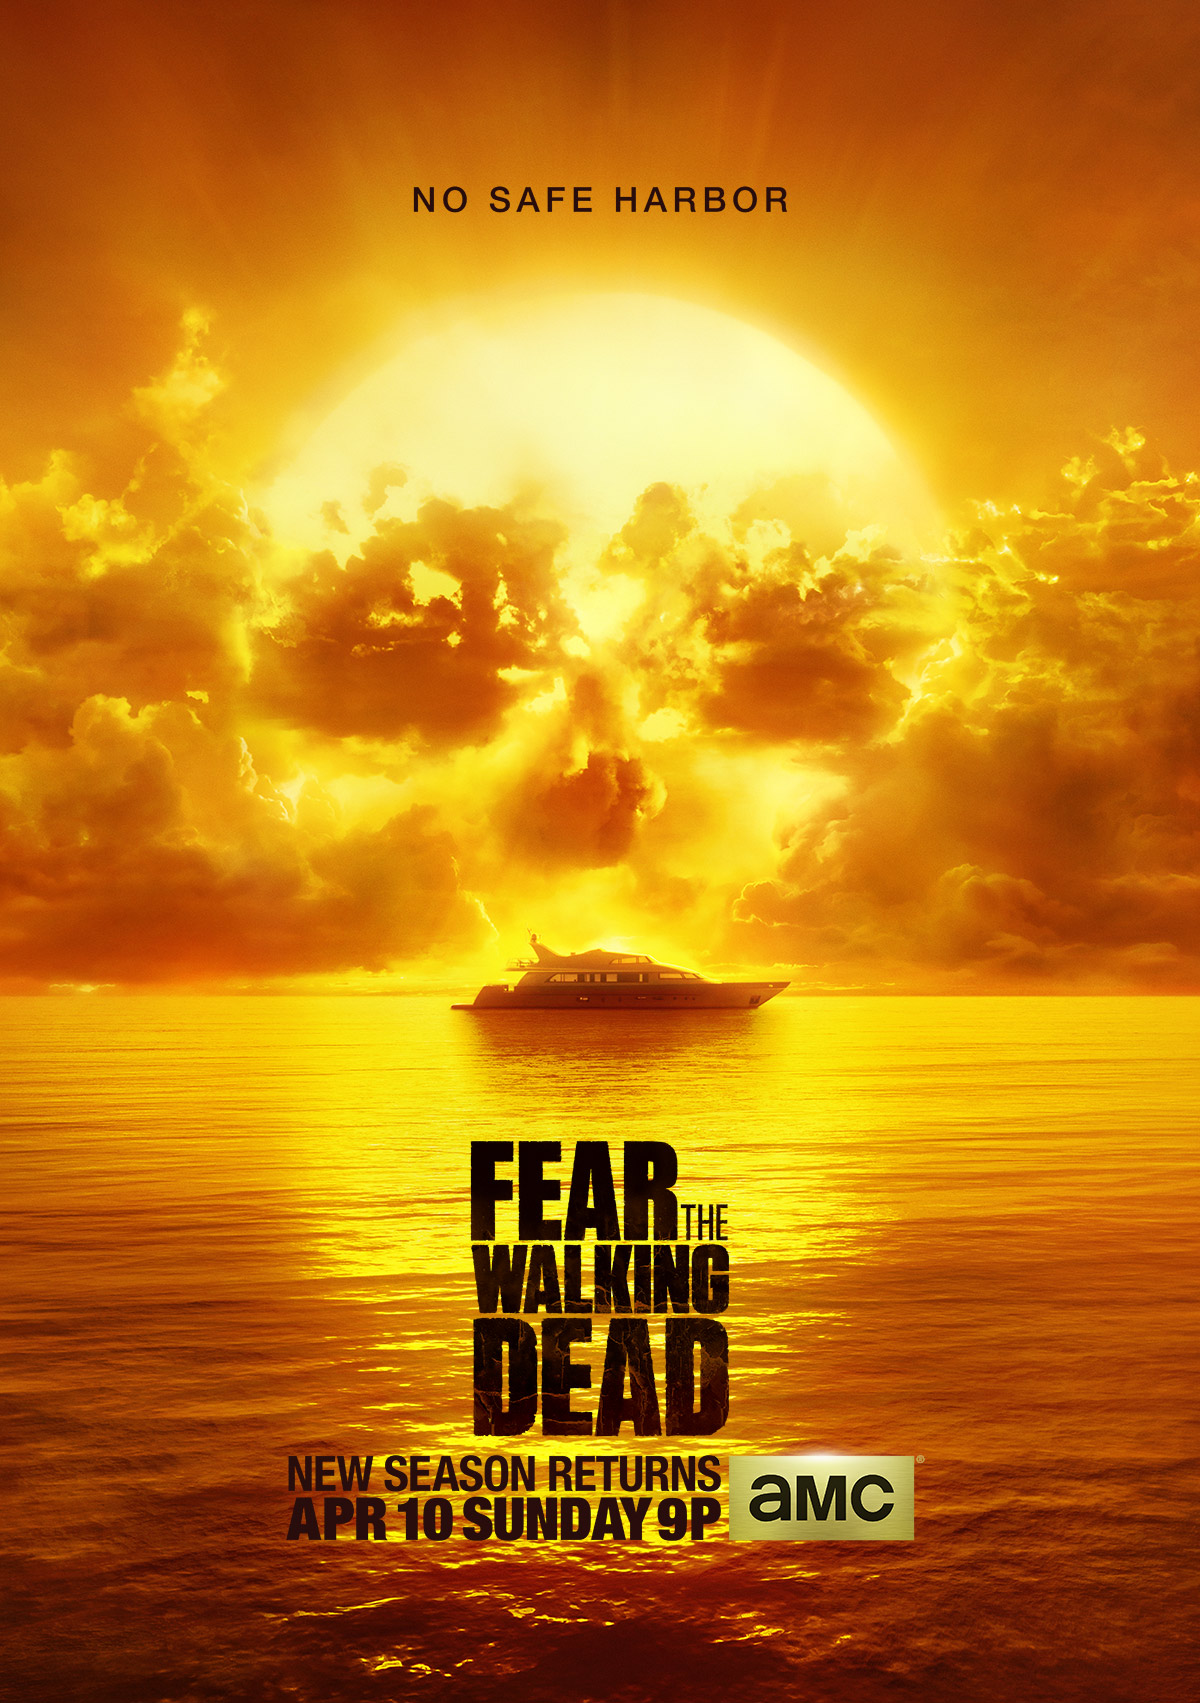 Fear The Walking Dead 2x09 - Los muertos [HDTV] [Sub]